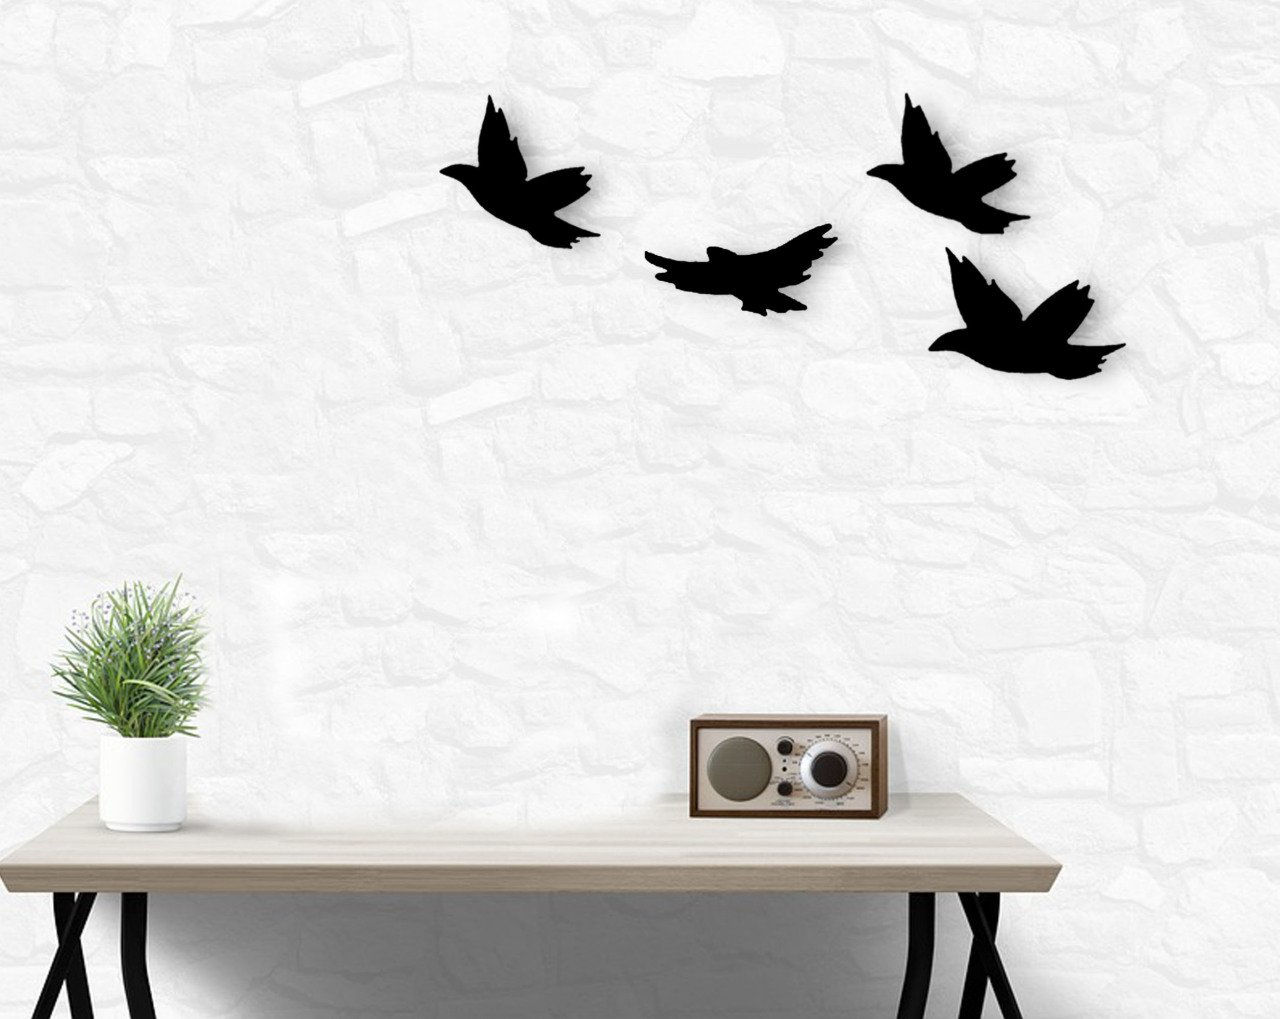 BK Home Birds Wood Wall Decoration Modern Convenient Reliable Decoration Gift Quality Design Simple Cool Black Color